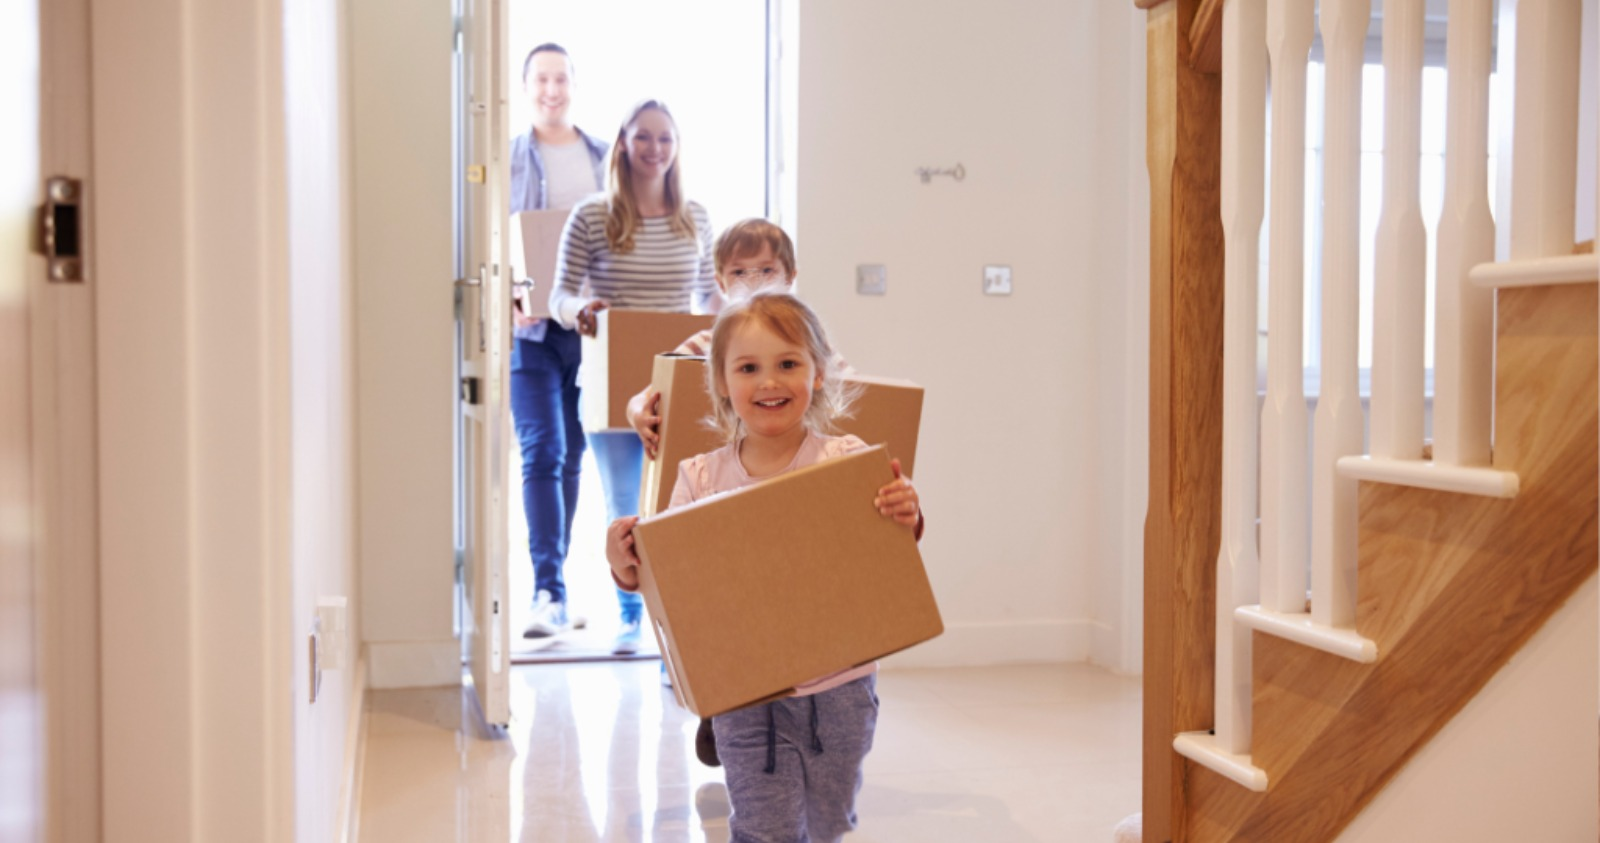 family-carrying-boxes-into-new-home-on-moving-day-picture-id546201764